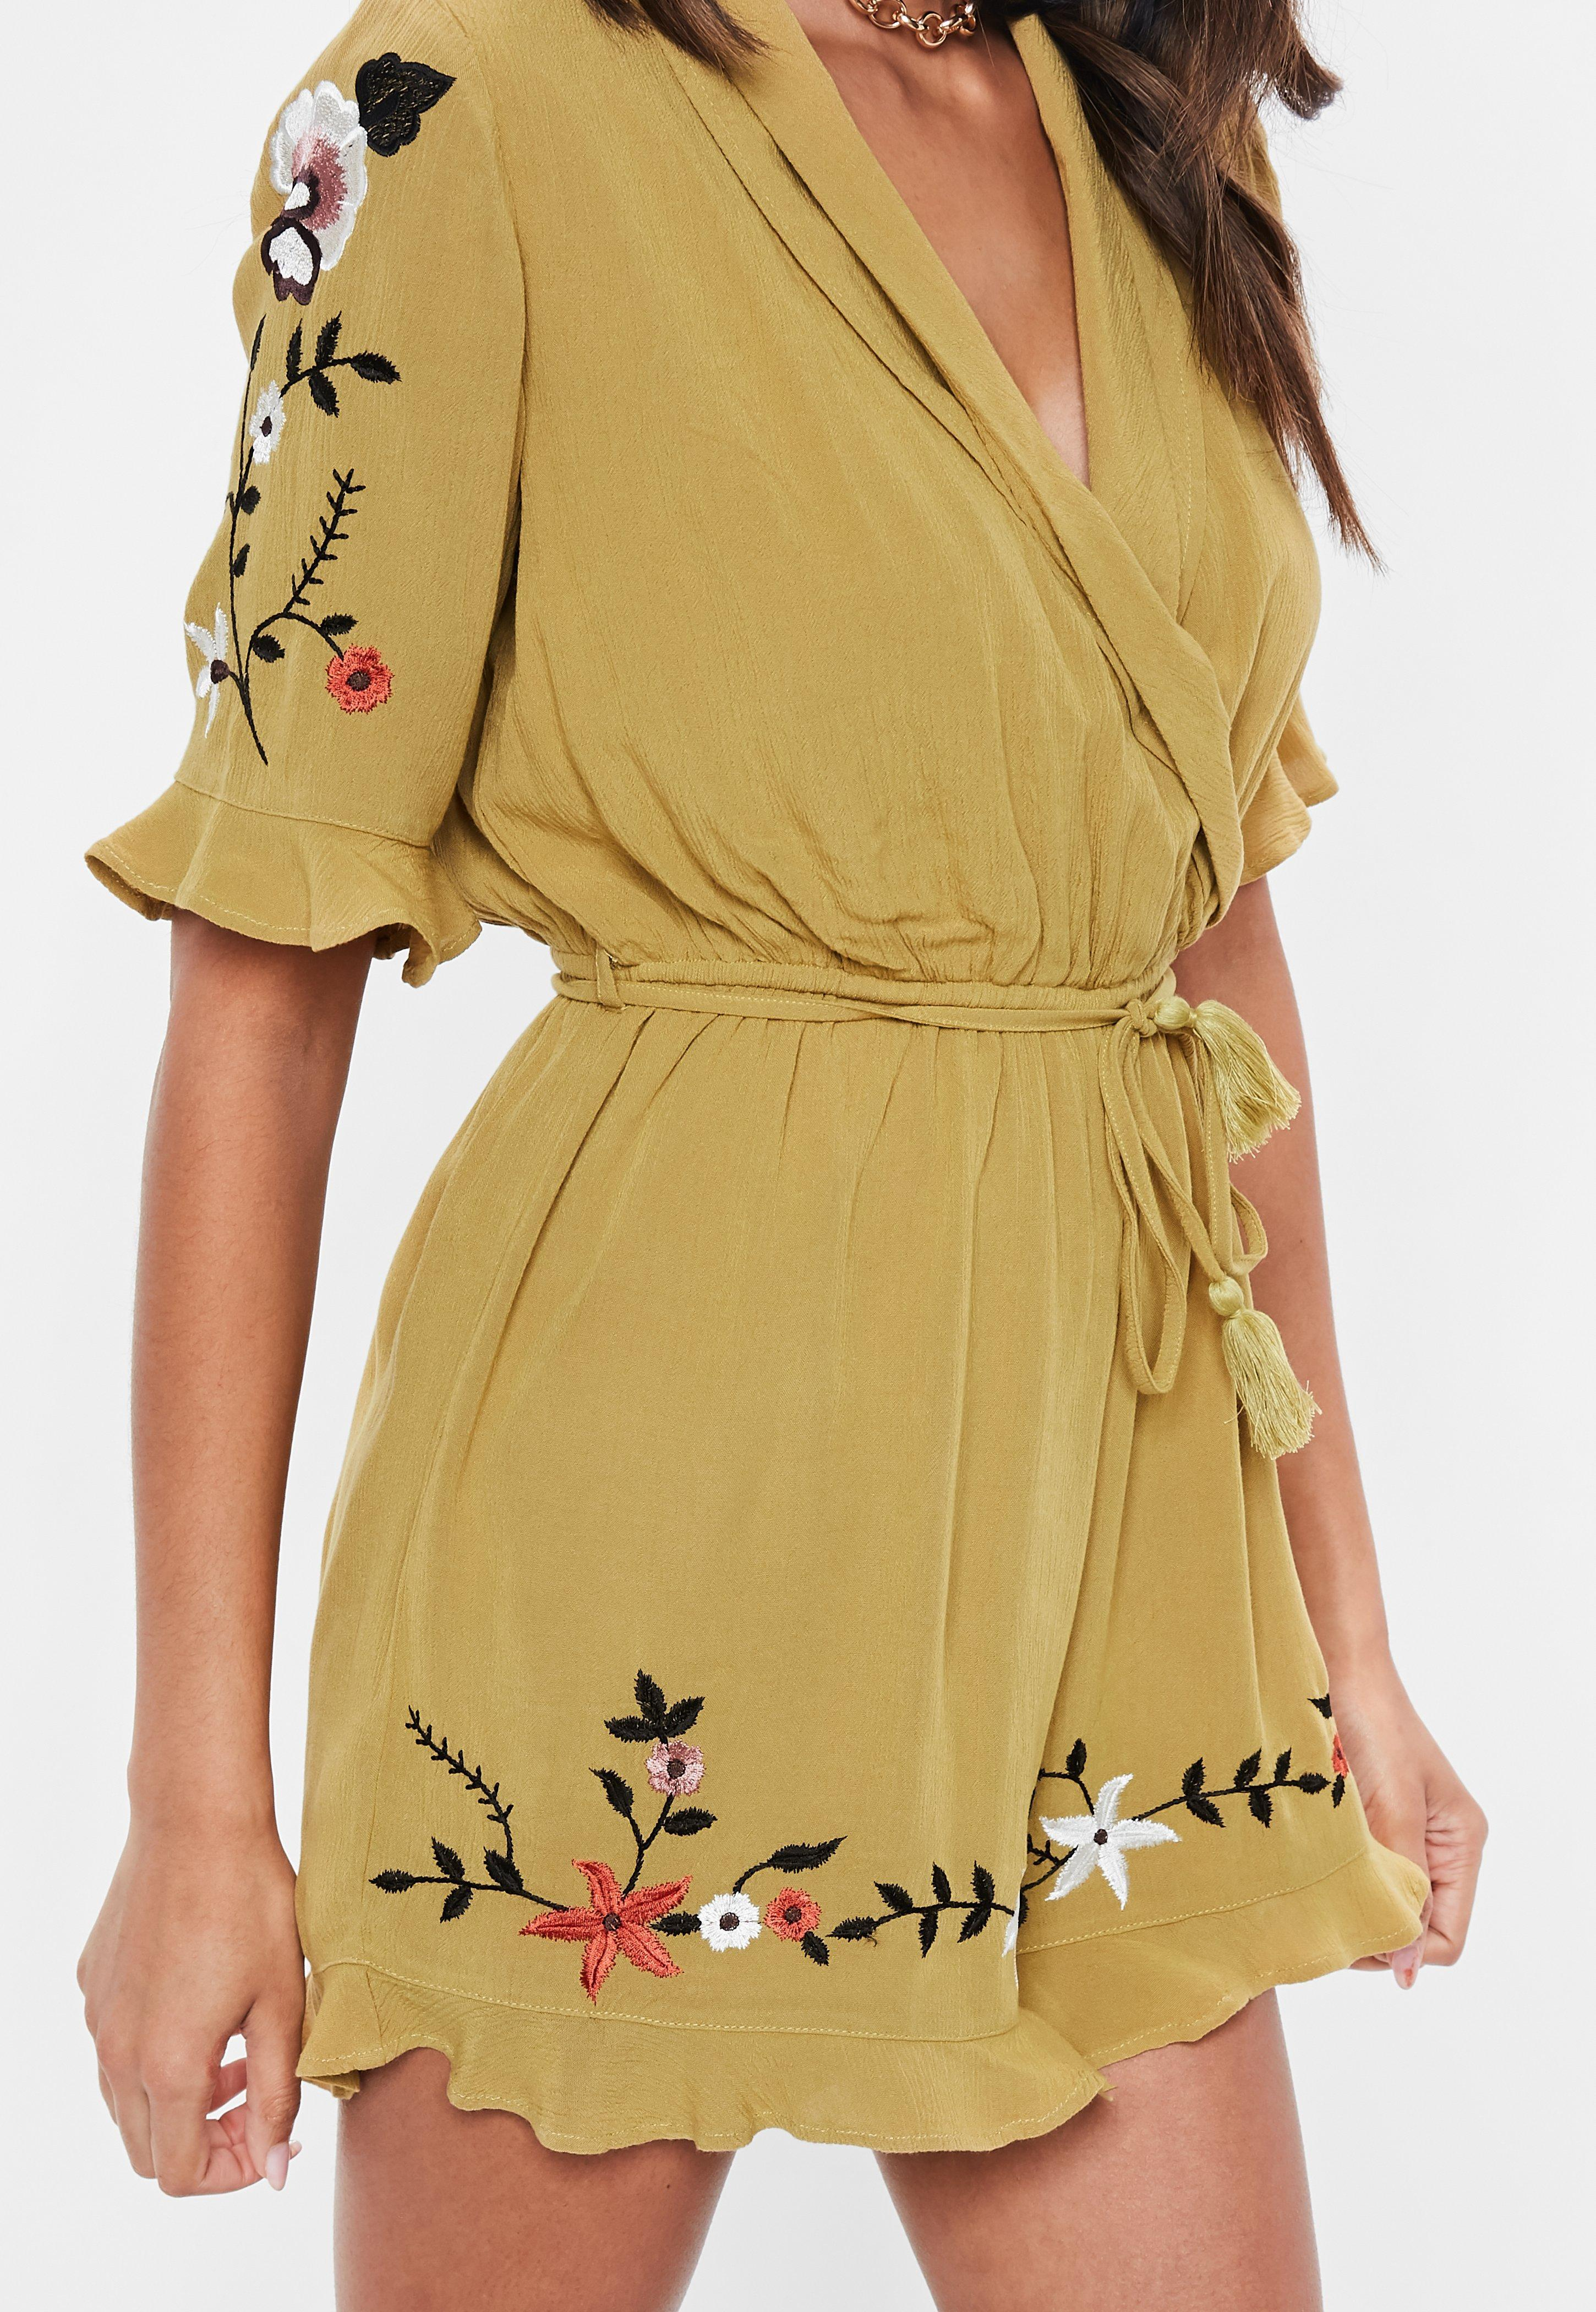 2fac4f39e04c Lyst - Missguided Mustard Cheesecloth Embroidered Romper in Yellow